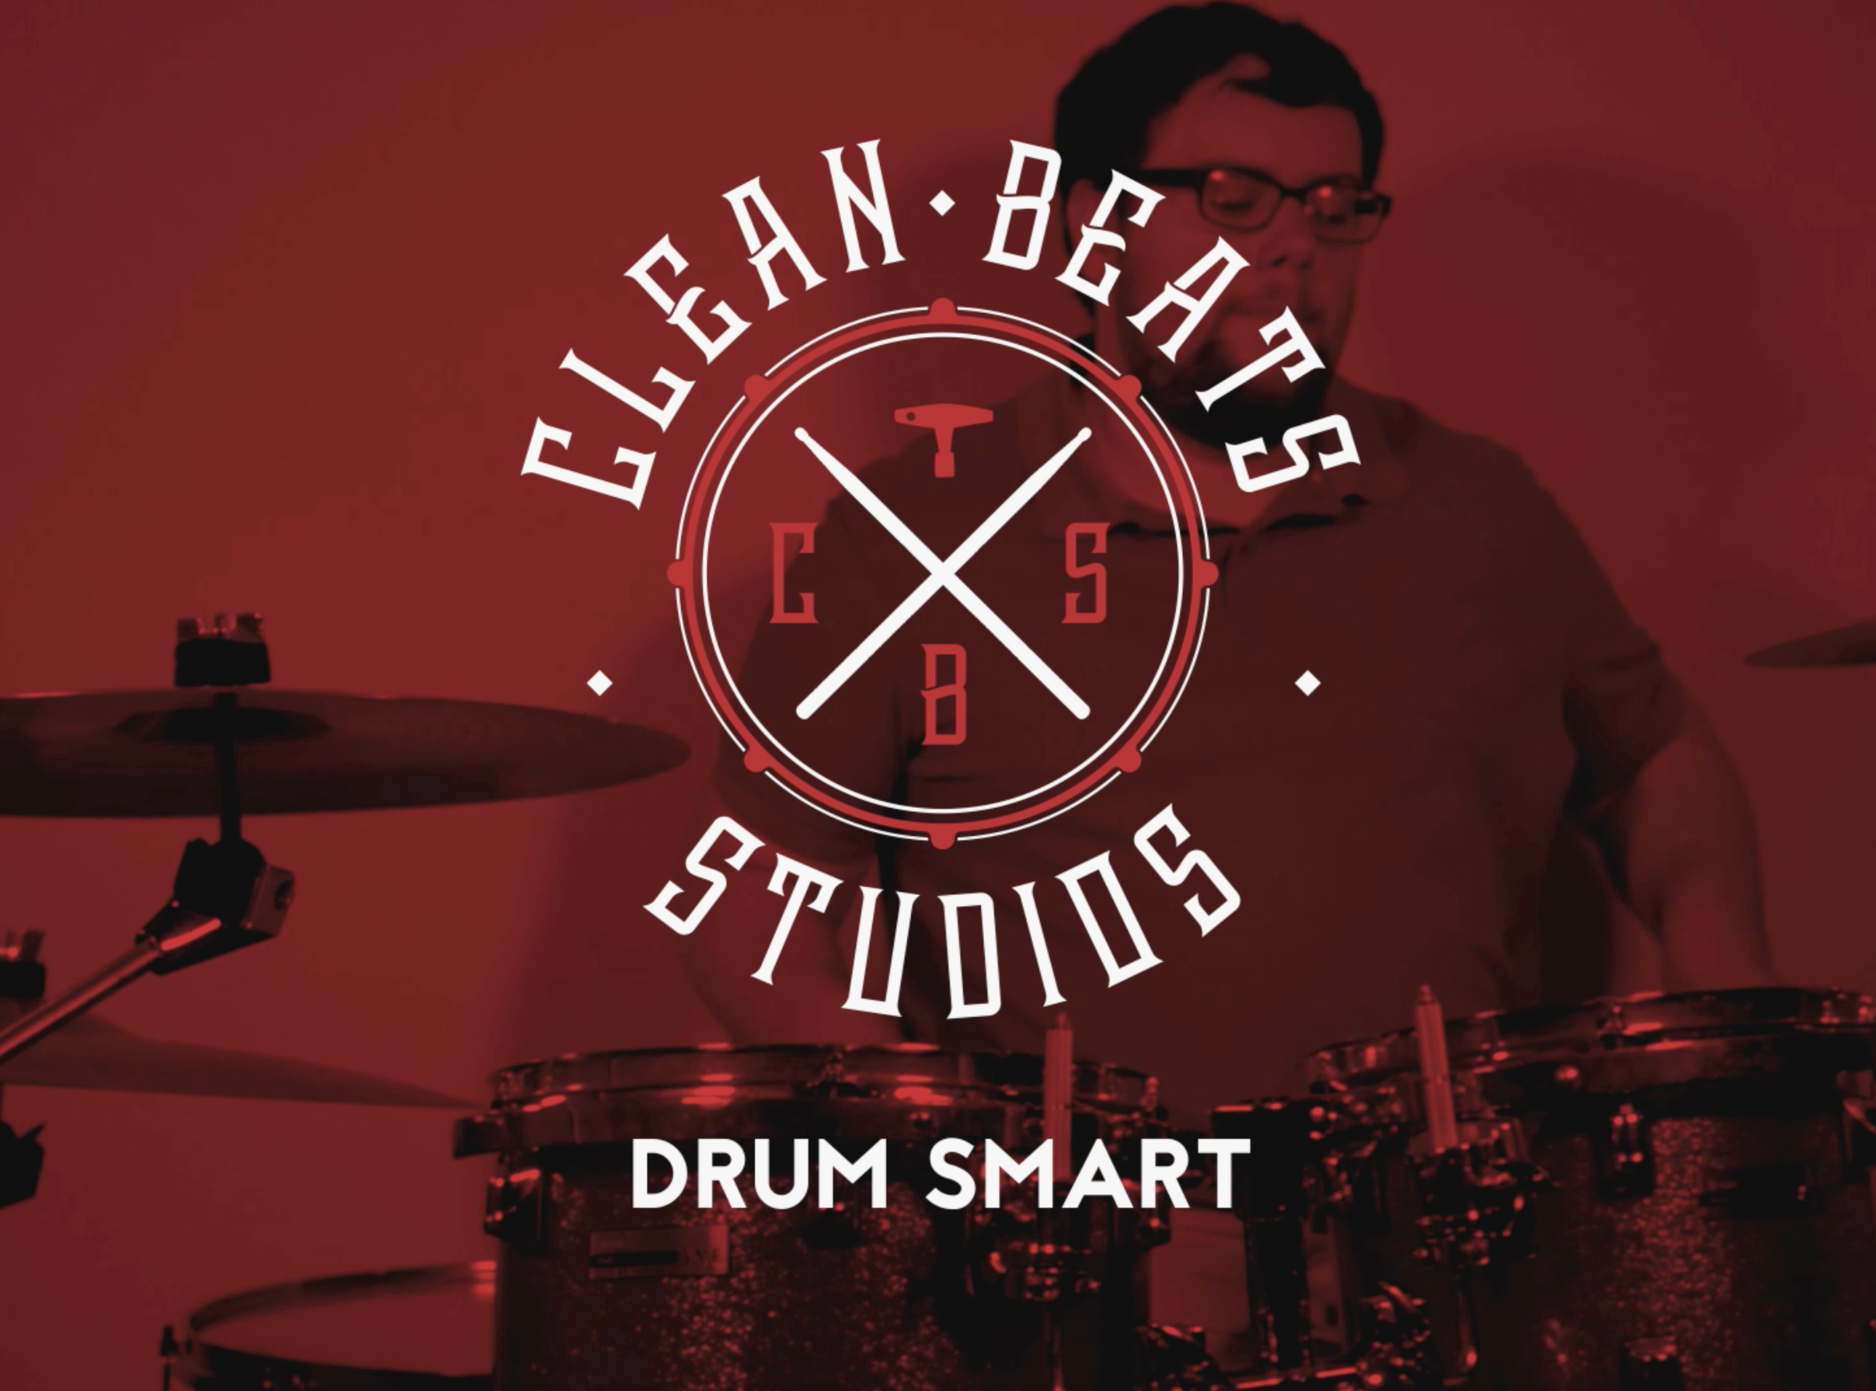 Get your skills up on your own time with our Drum Smart video series.